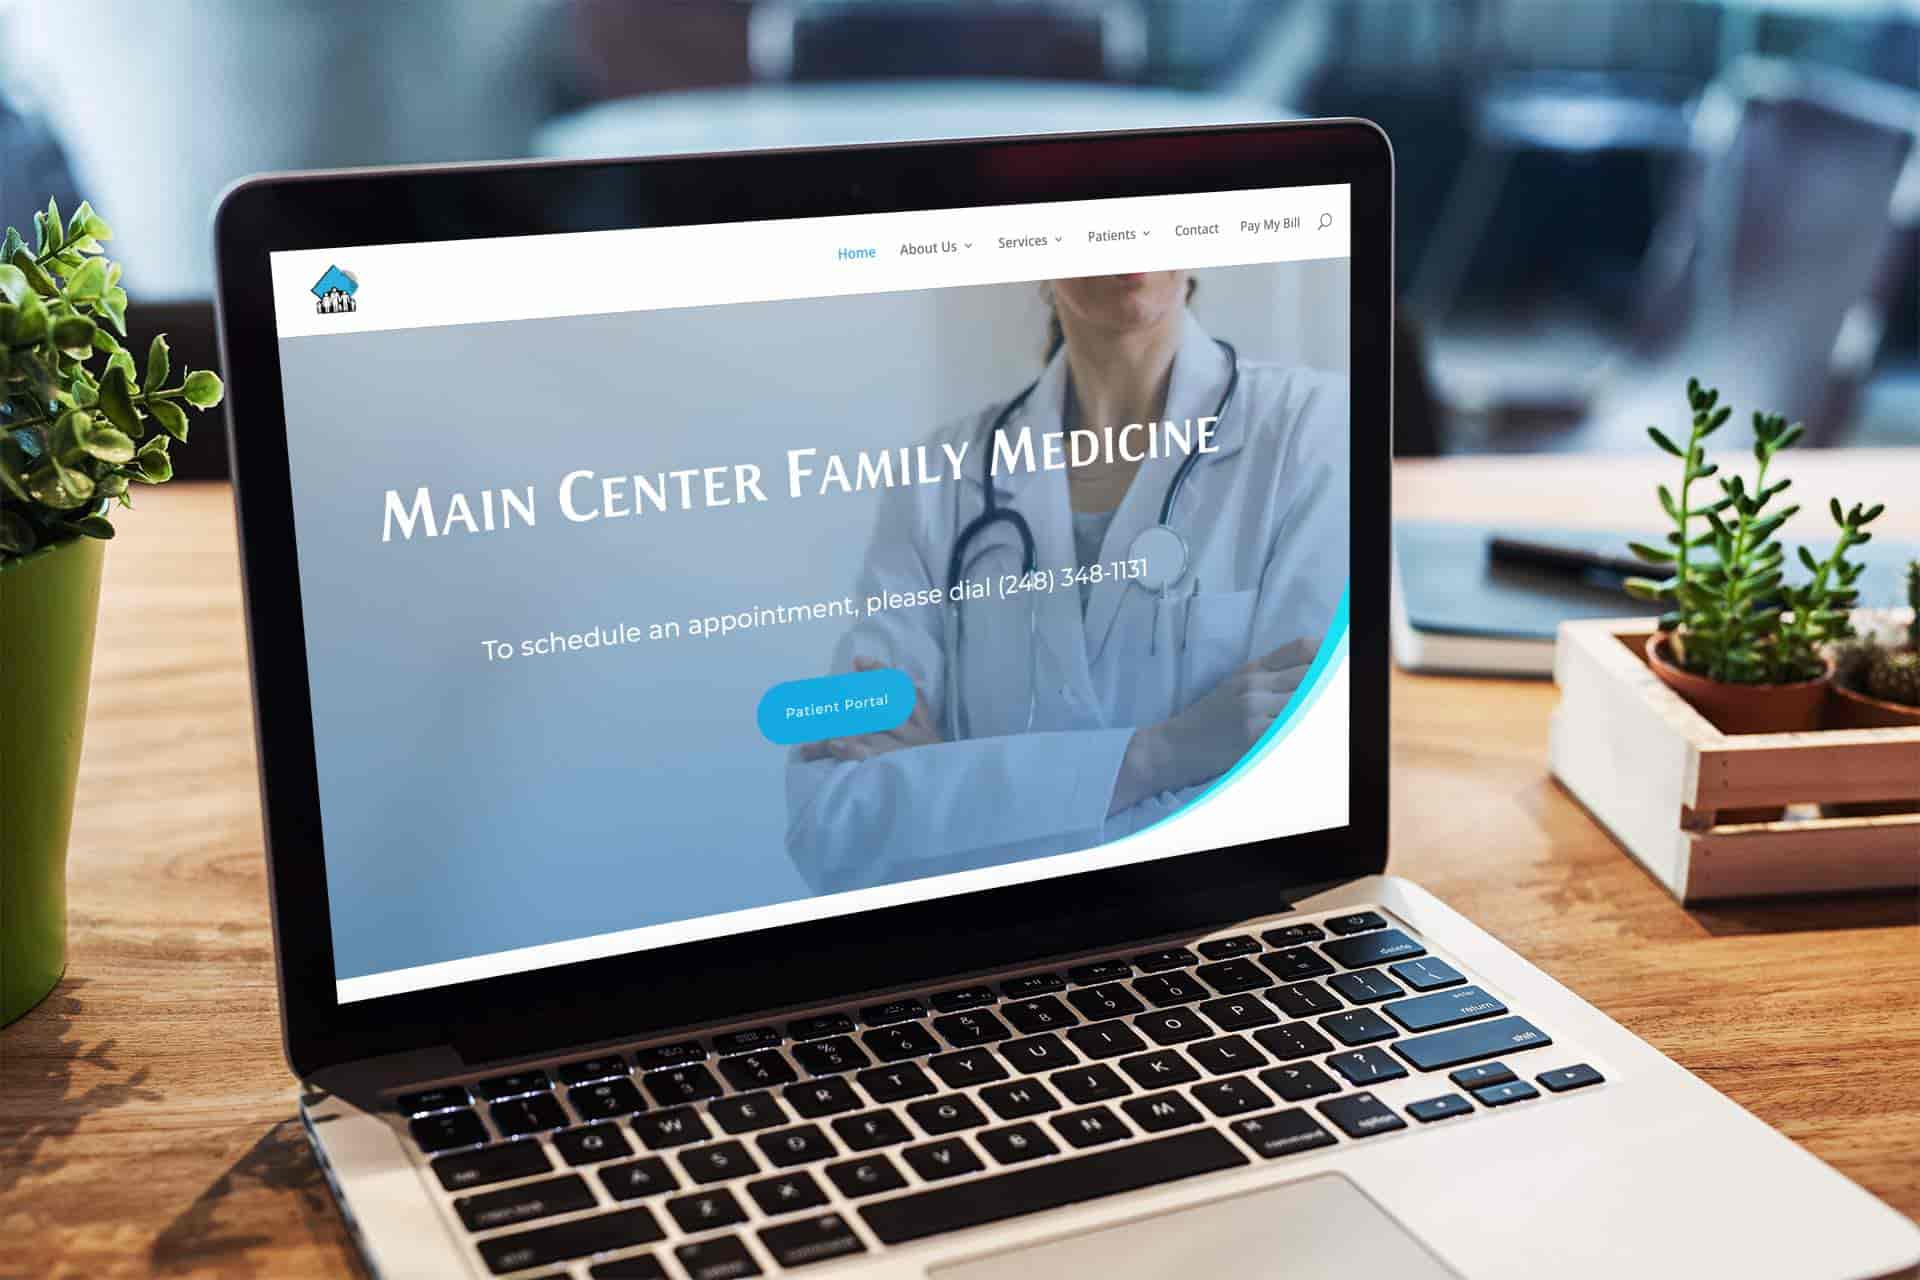 main center family medicine redesign